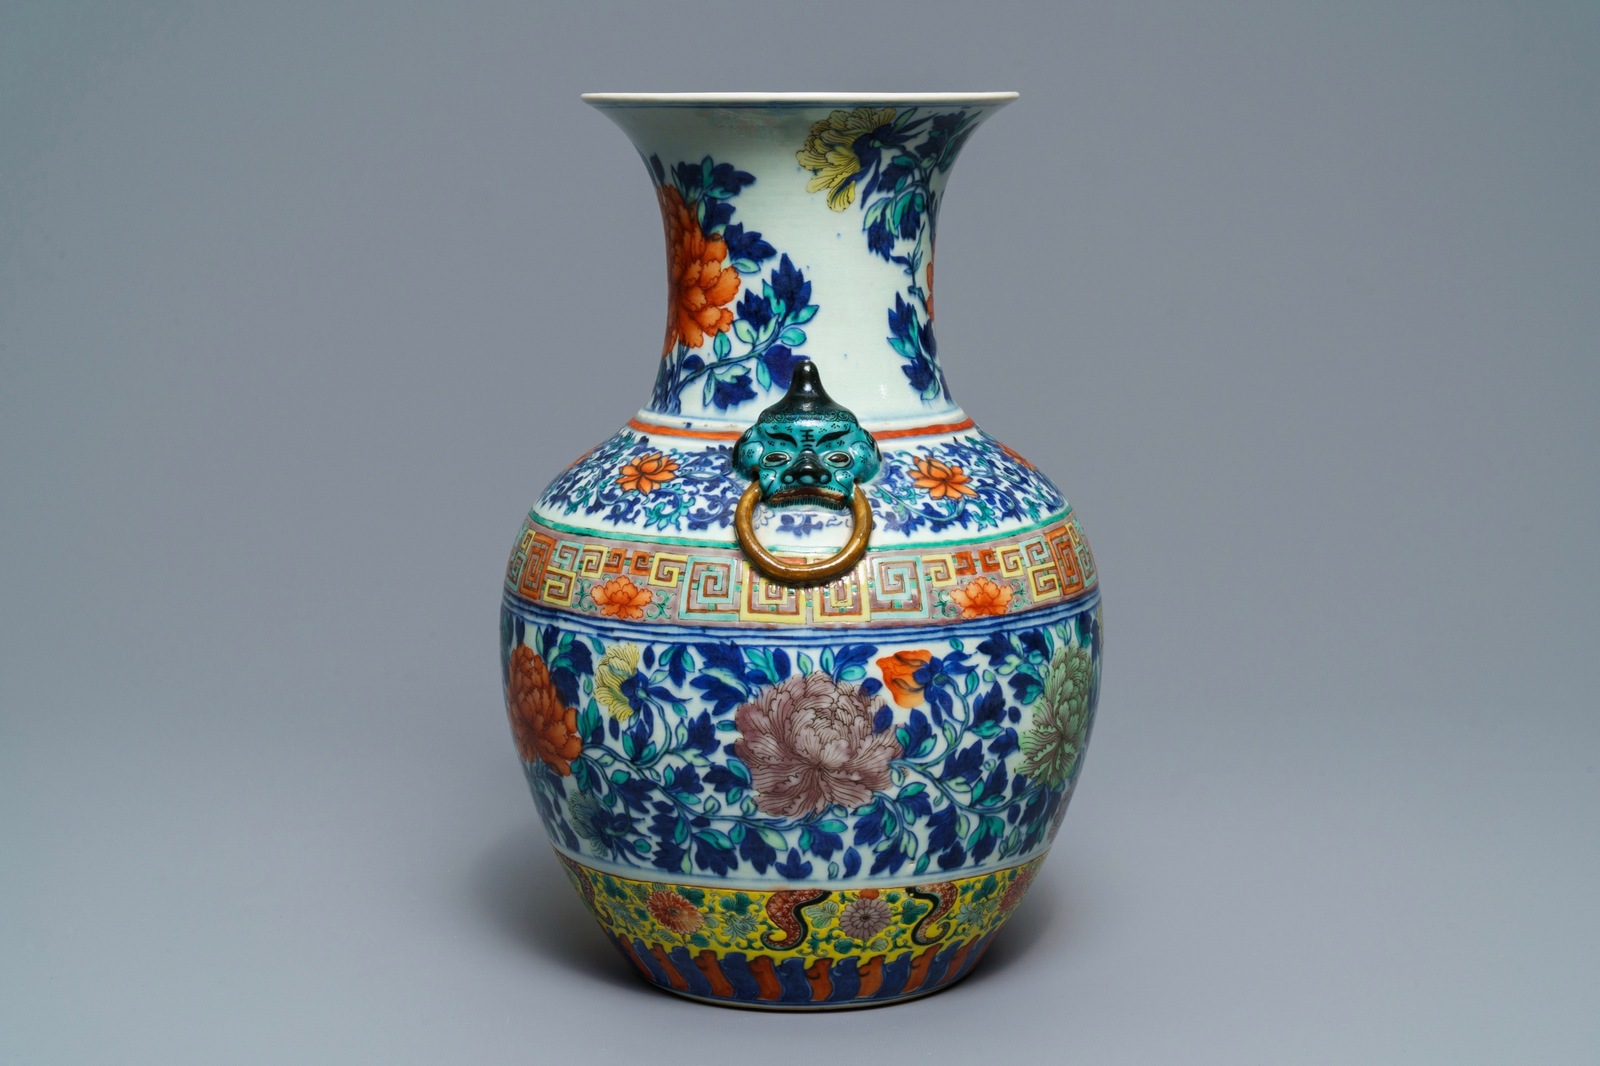 Lot 47 - A Chinese doucai 'peony' vase, 19th C.